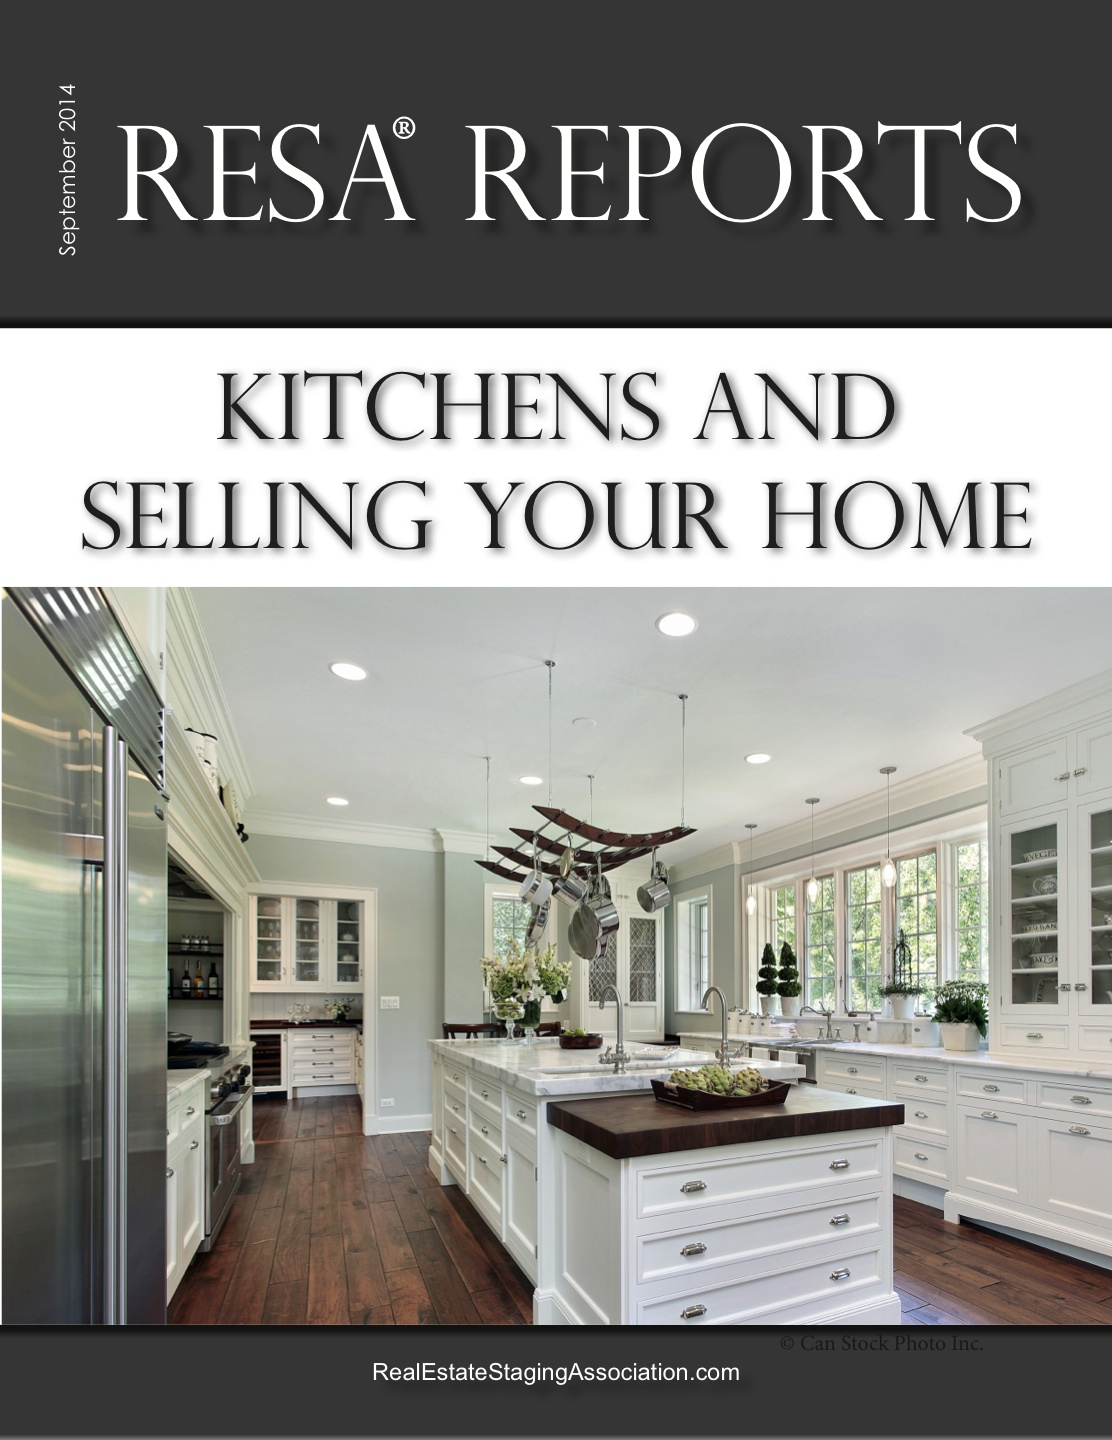 RESA Reports Kitchens and Selling Your Home